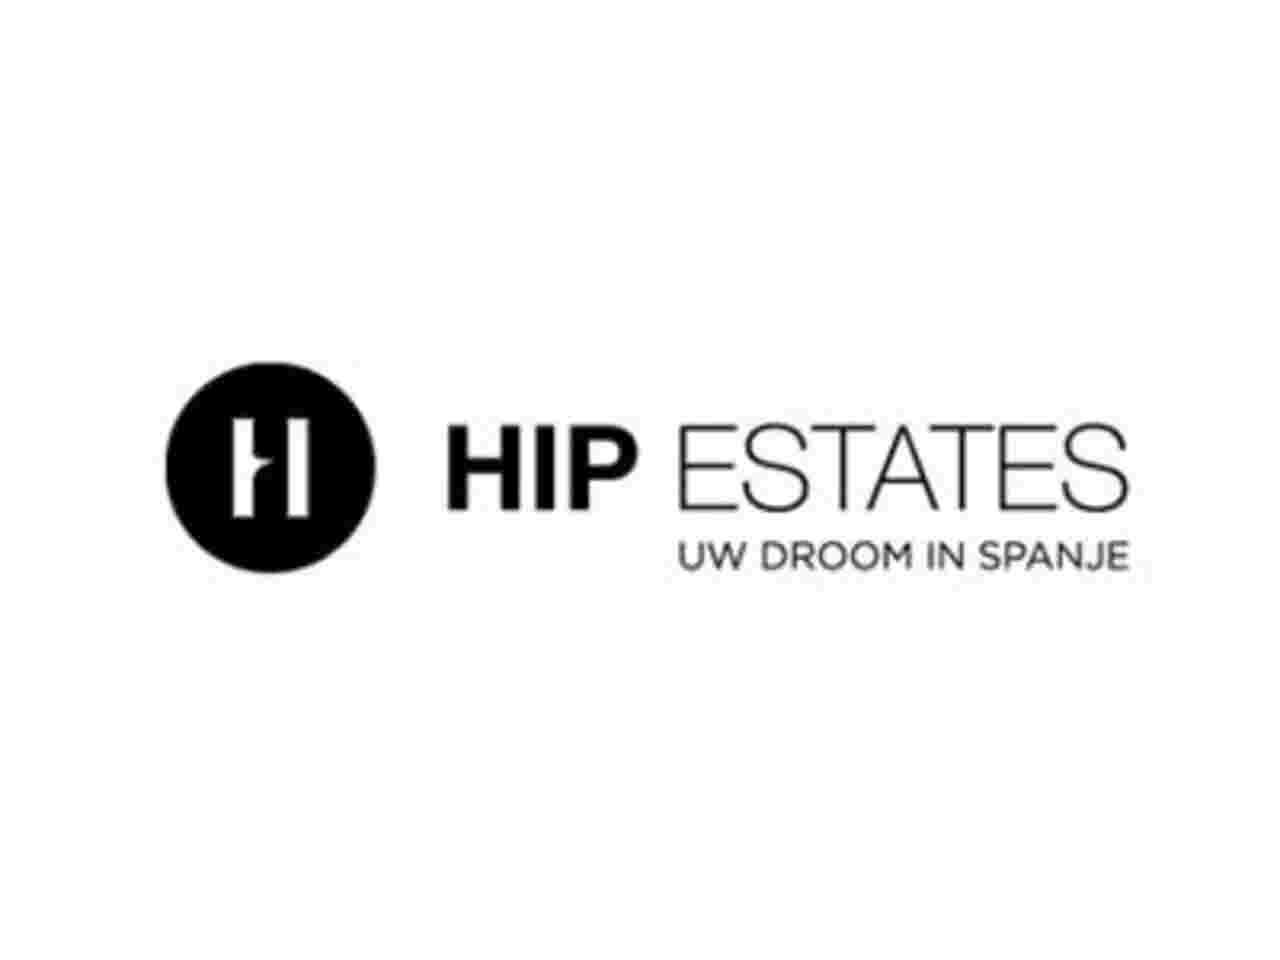 Hip Estates